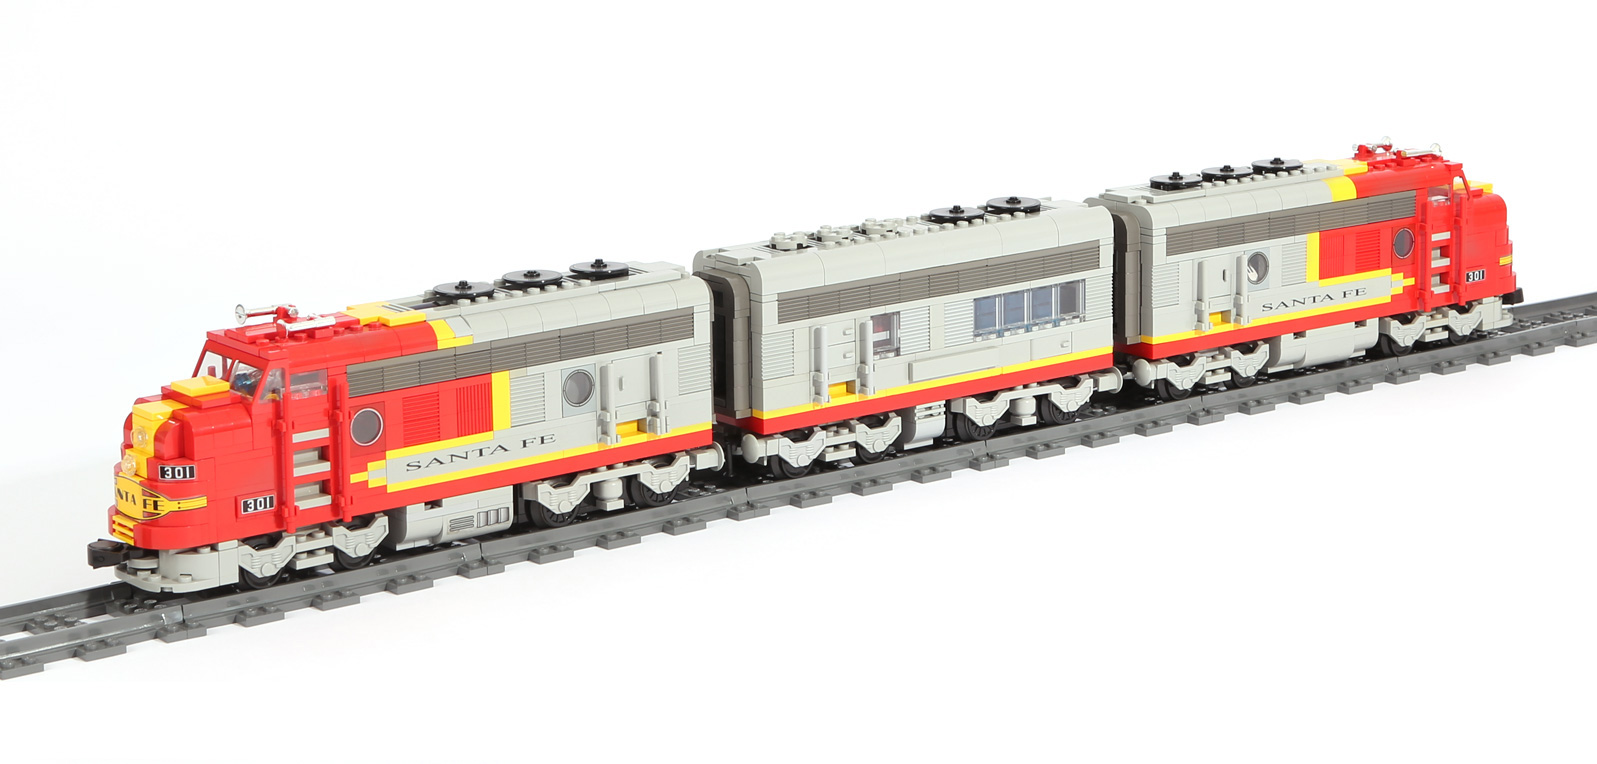 Santa Fe Super Chief – Original LEGO Set 10020